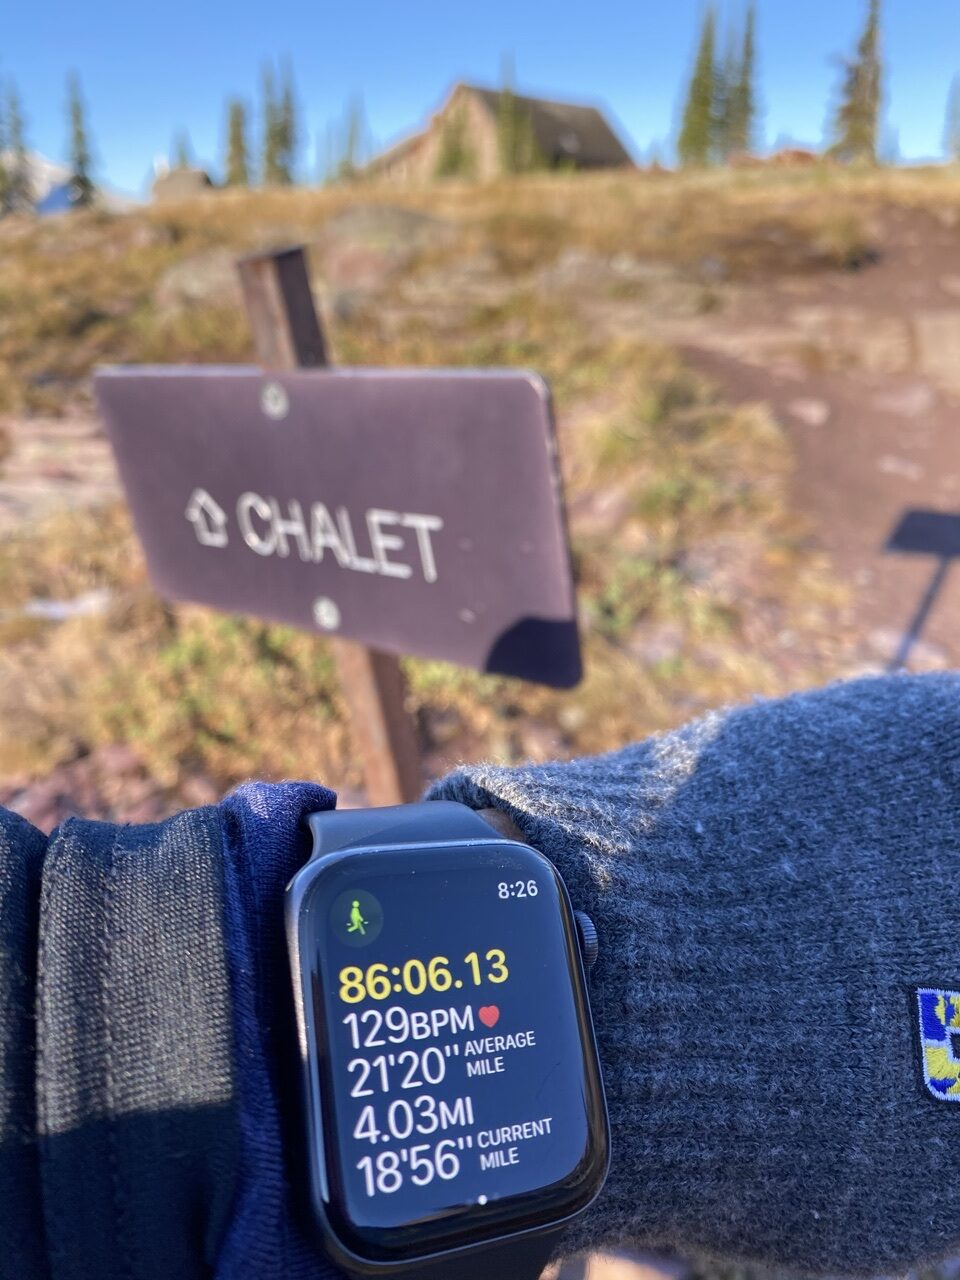 Chalet sign and AppleWatch time/distance display